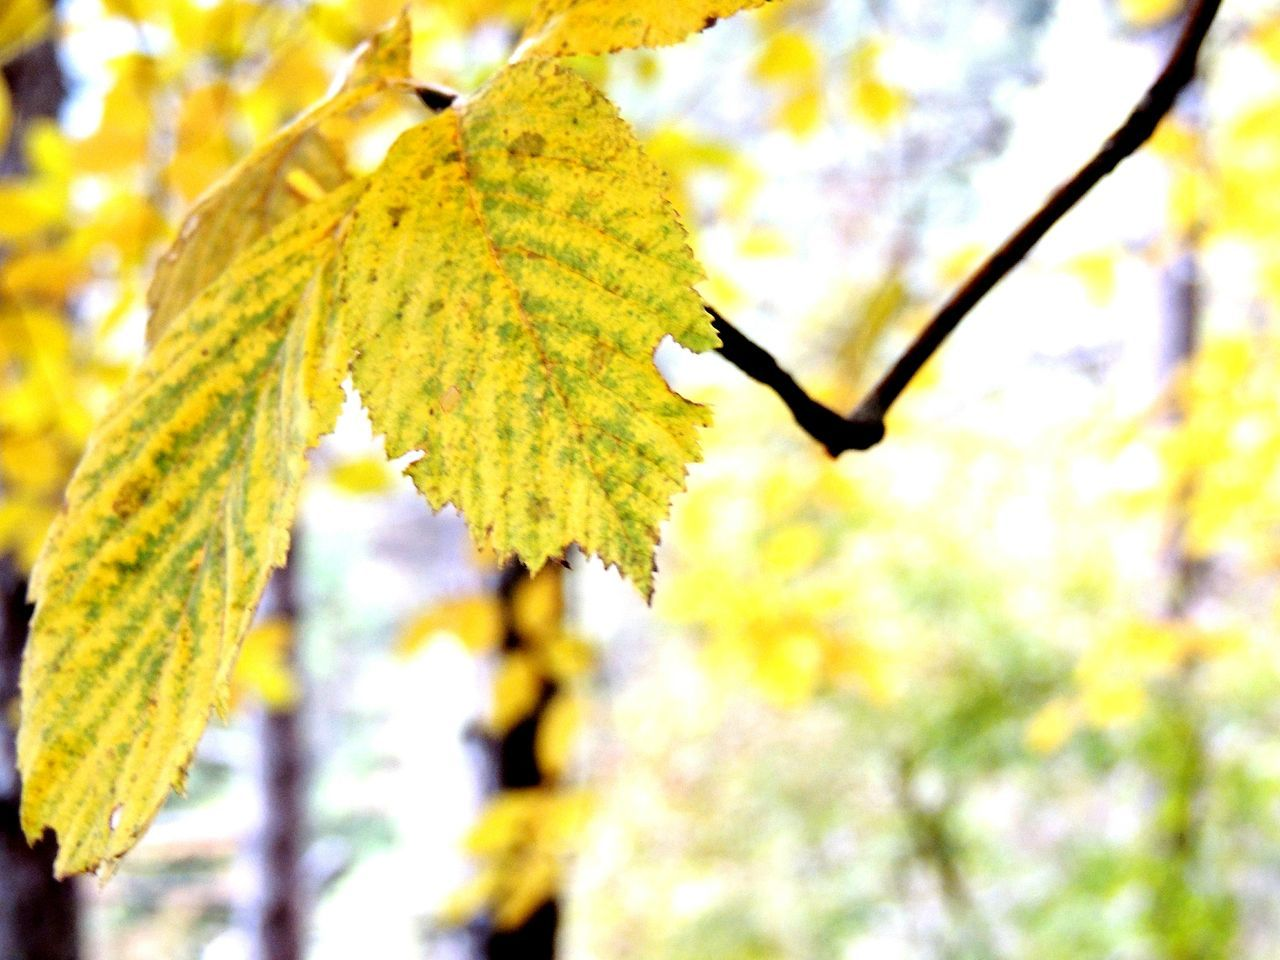 Animal Themes Animals In The Wild Beauty In Nature Branch Close-up Day Focus On Foreground Growth Leaf Low Angle View Nature No People Outdoors Tree Leaf 🍂 Leafs 🍃 Leafs Photography Leafs Colors Leafs Leafscape Leafs. Autumn Autumn Colors Autumn🍁🍁🍁 Autumn Colours